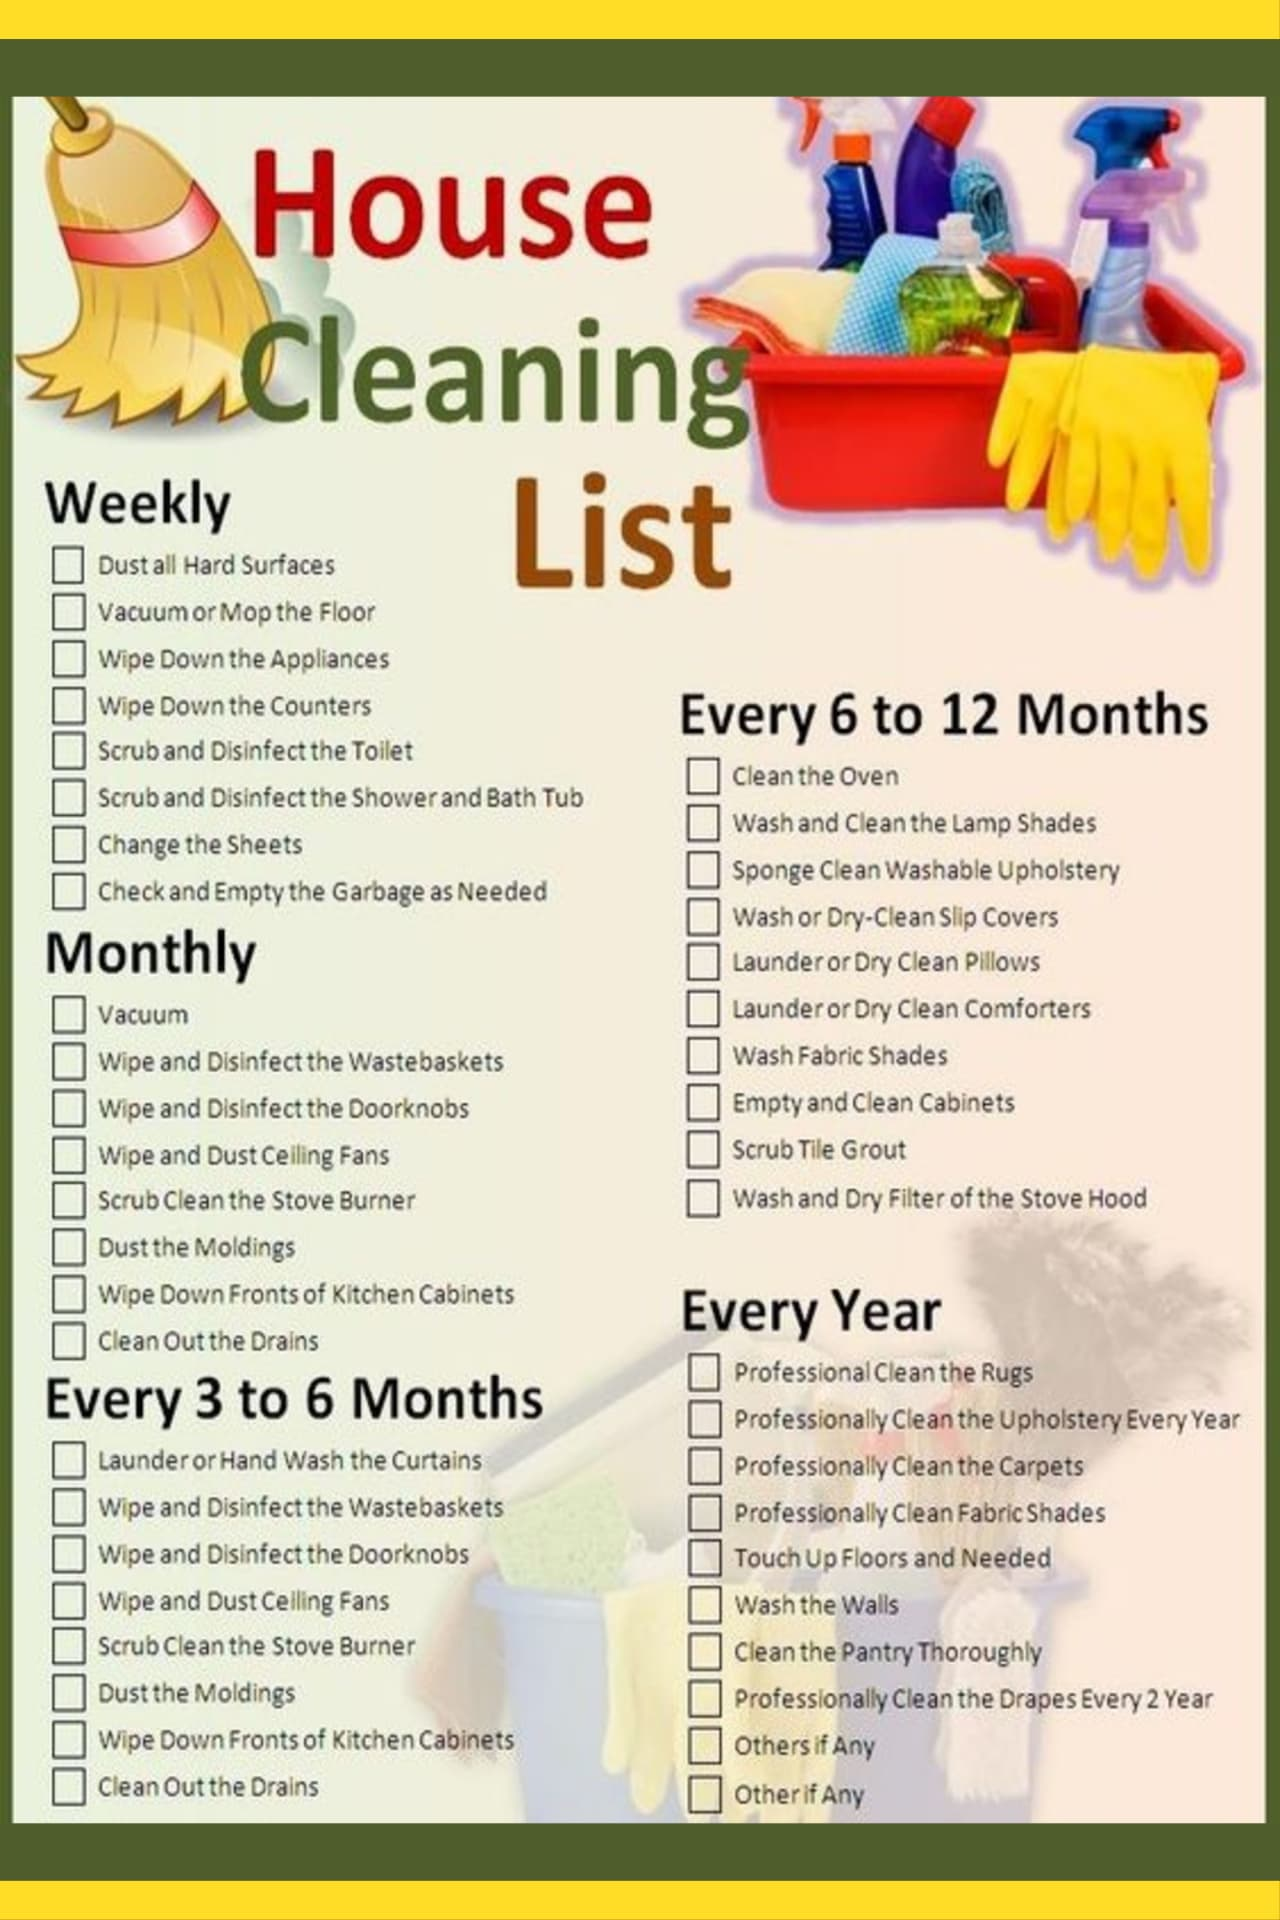 How to clean house like a Pro - or like a maid - quickly clean house top to bottom with these house cleaning schedules and checklists even when overwhelmed or with kids or with NO motivation to clean at all. clean your house like a pro in one day - yes FAST with these house cleaning tips.